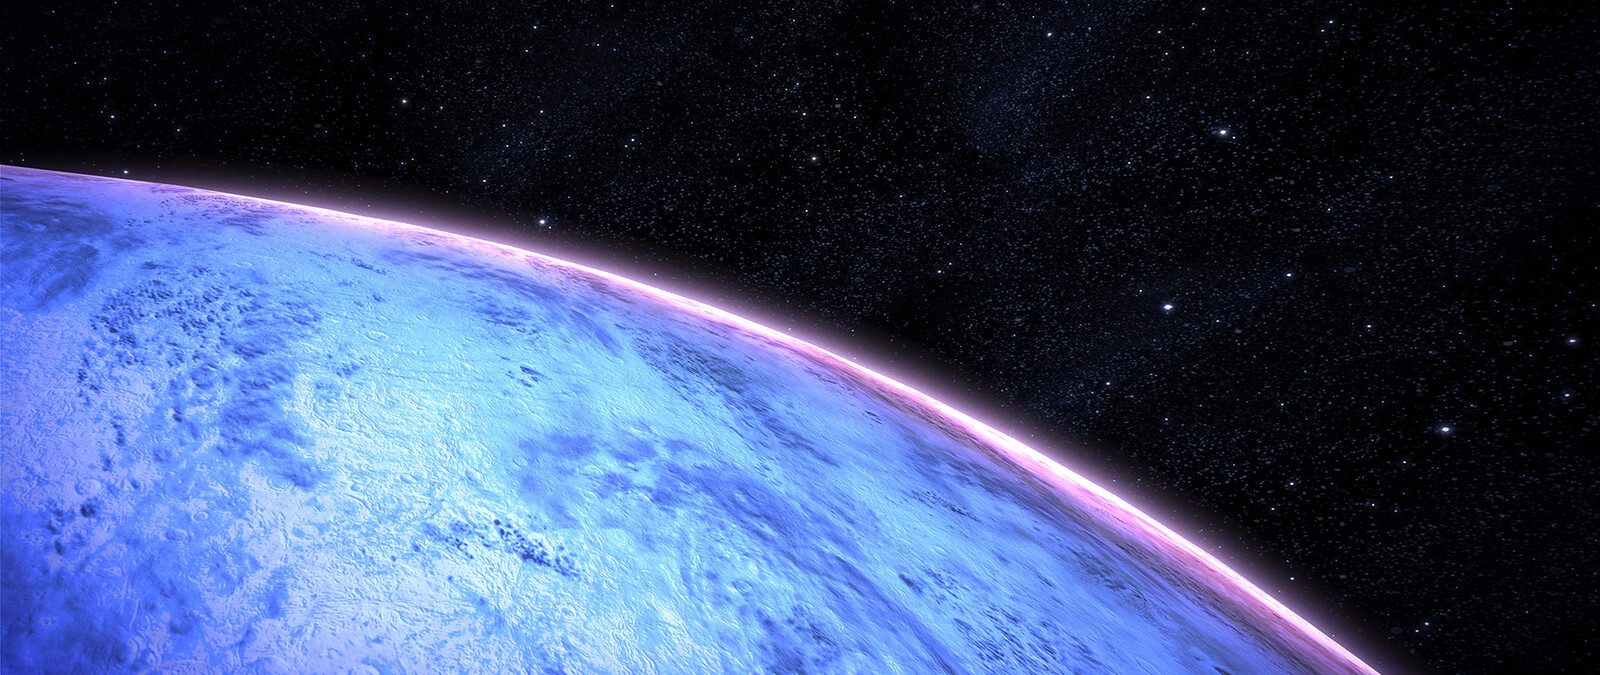 Mass Effect Planets and Moons (BioWare)